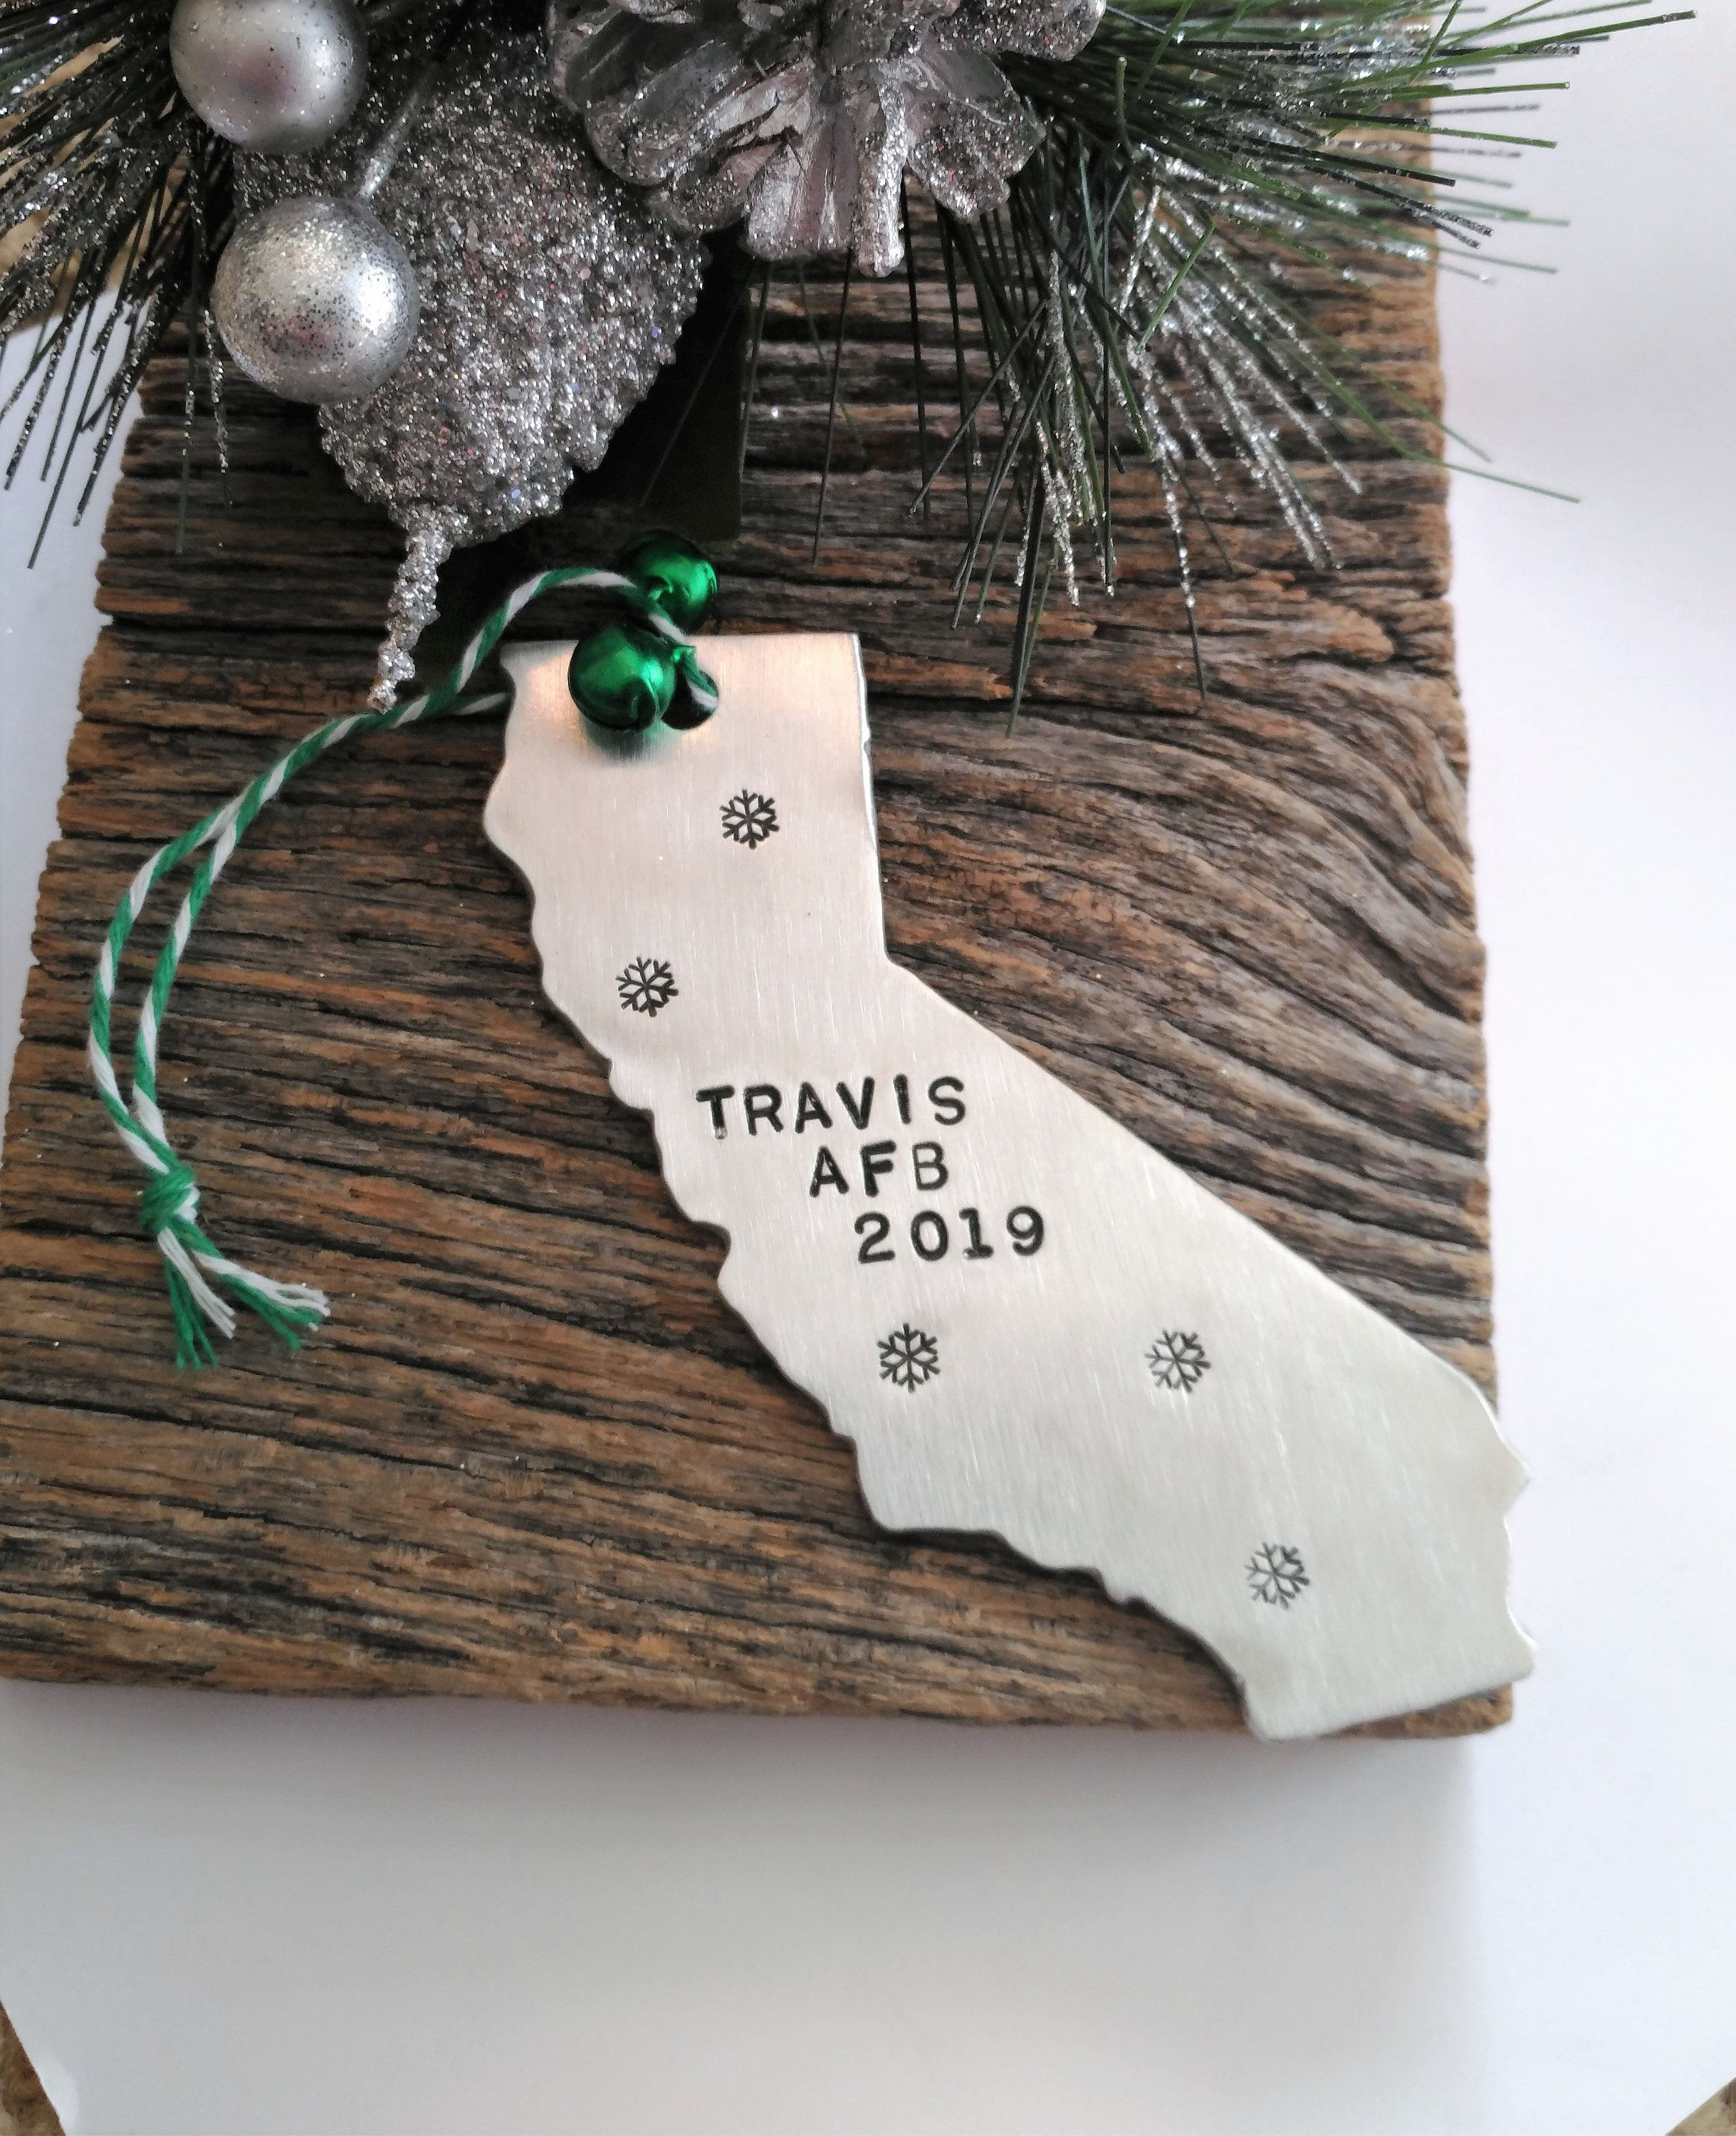 US Marines Personalized Christmas Ornament Handmade Customized Holiday Gift With Custom Handwritten Name